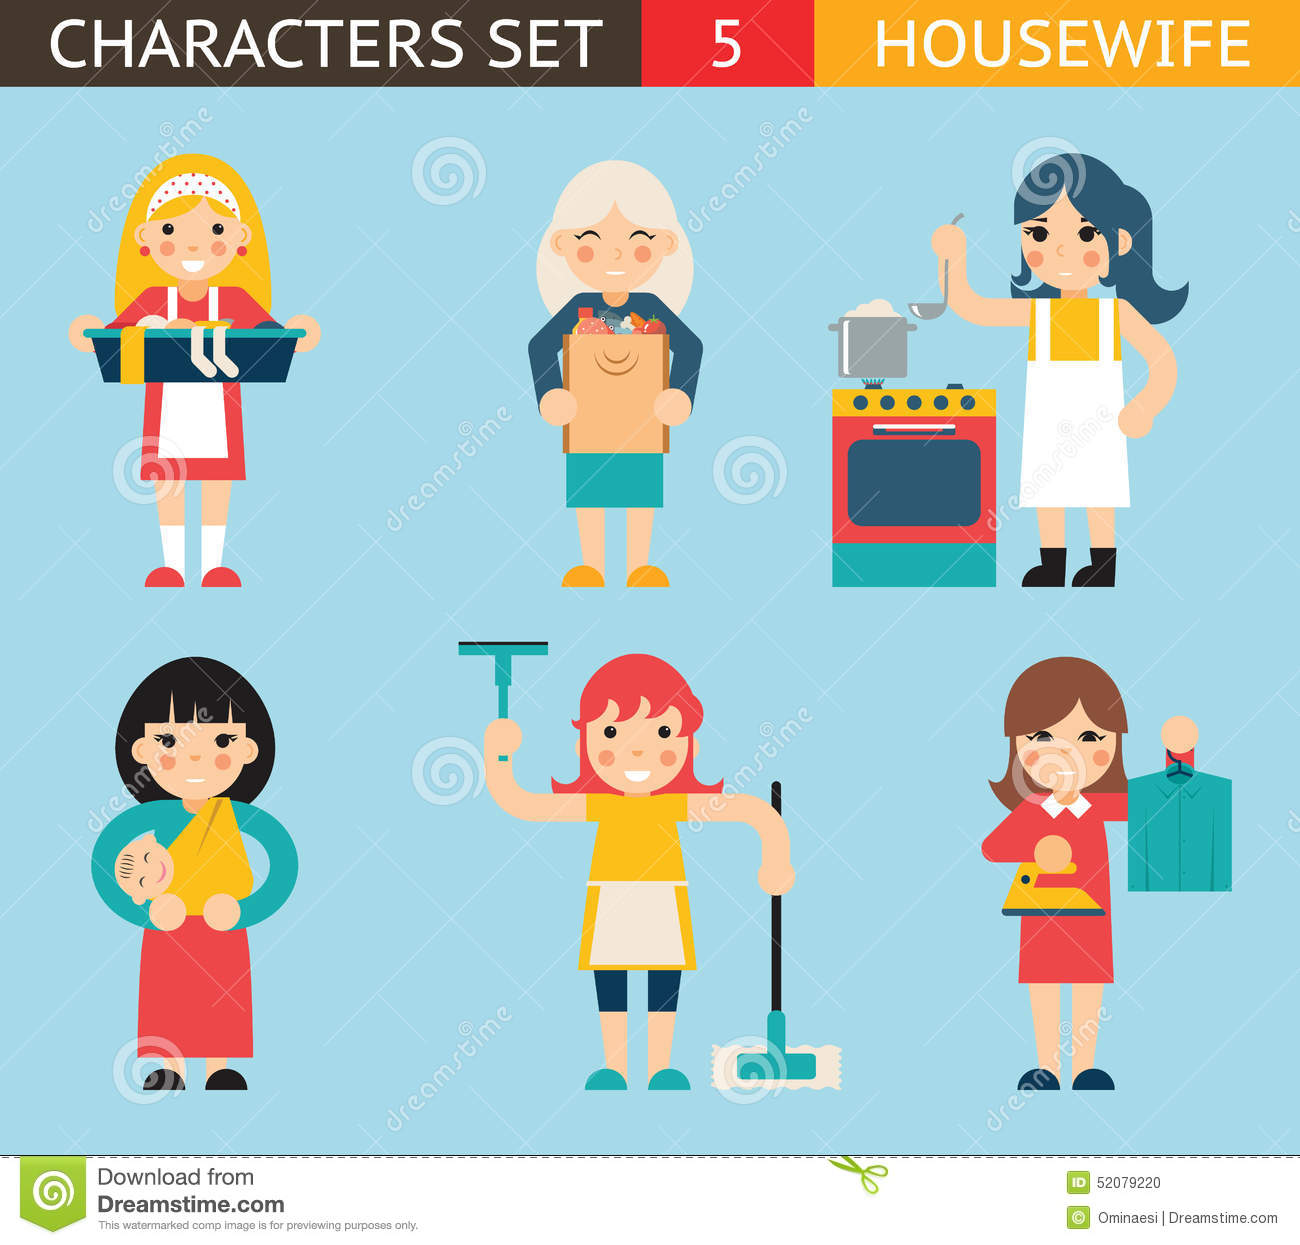 Illustrator Character Design Templates : Housewife characters icon set symbol with stock vector